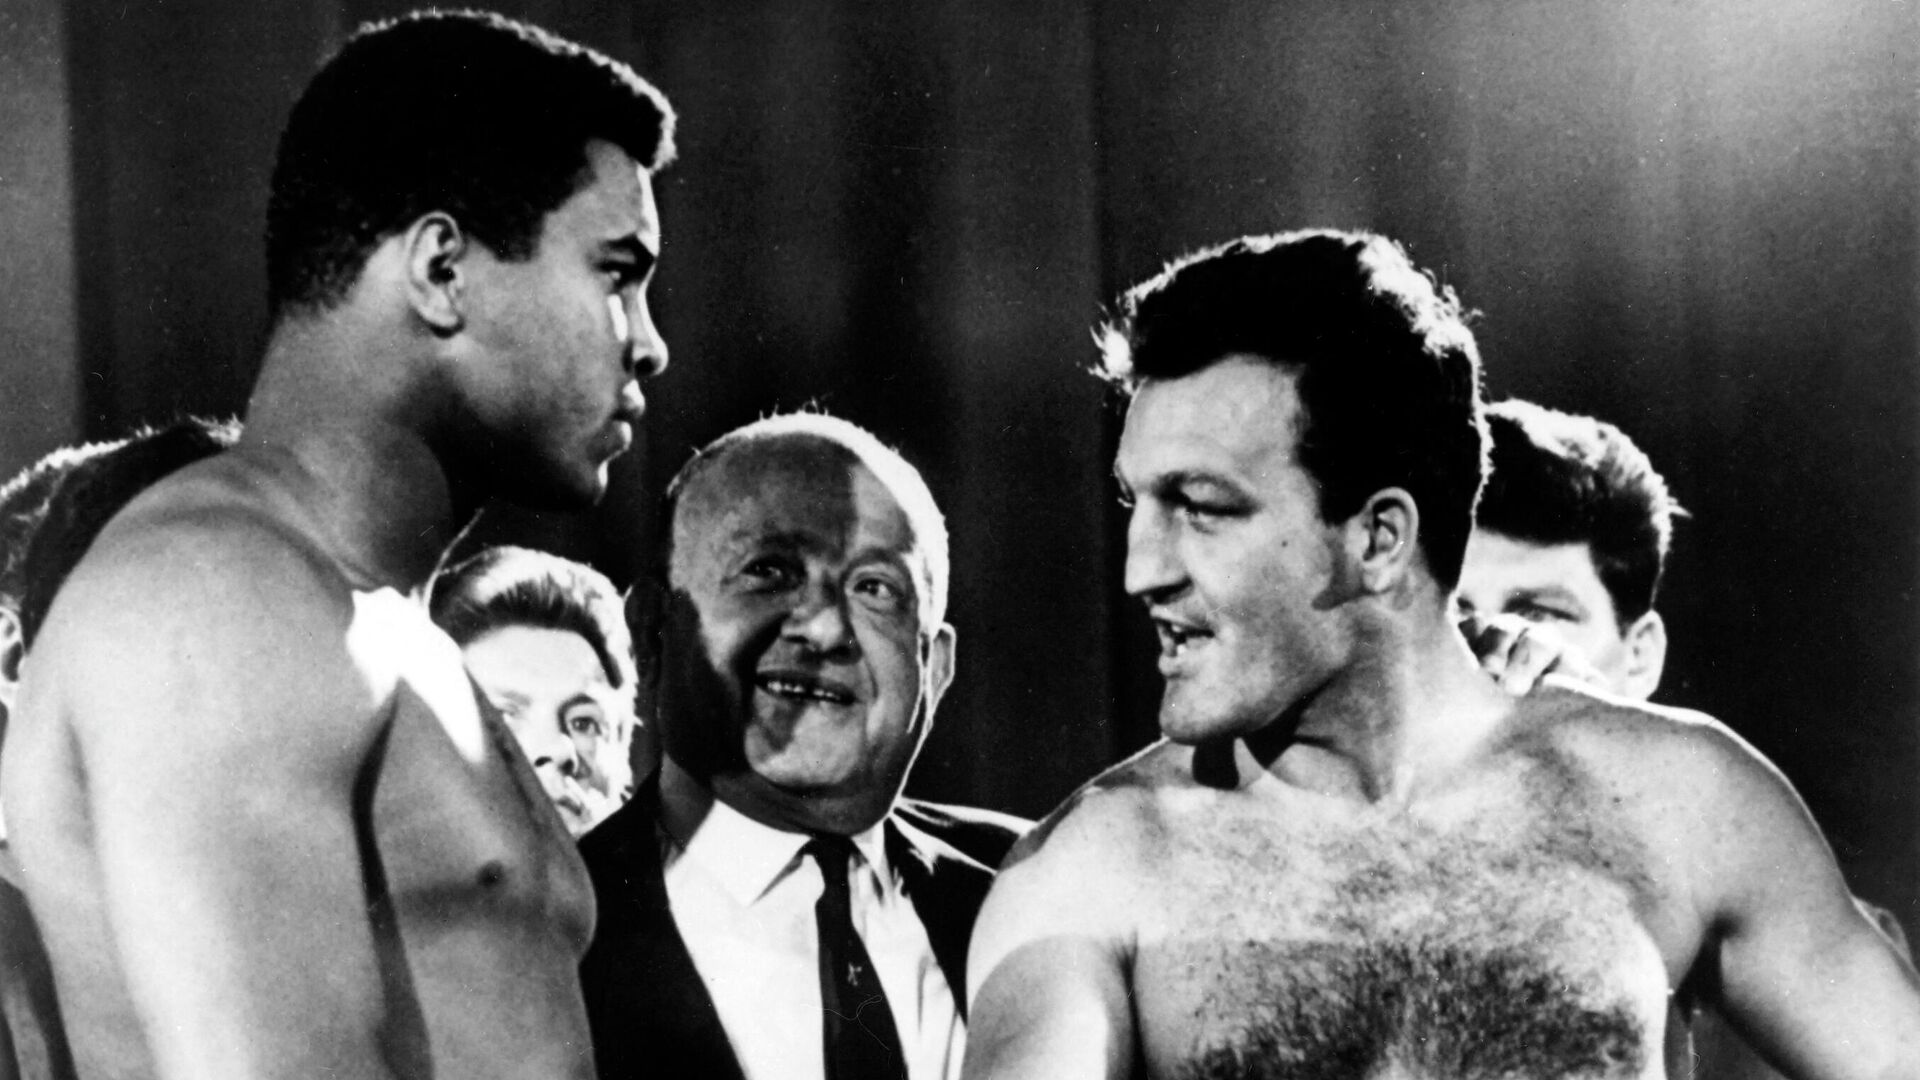 US Heavyweight boxer Muhammad Ali (L) and English Heavyweight boxer Brian London (R) shake hands before their fight at Earls Court Arena in London on August 6, 1966. -  (Photo by - / AFP) - РИА Новости, 1920, 23.06.2021